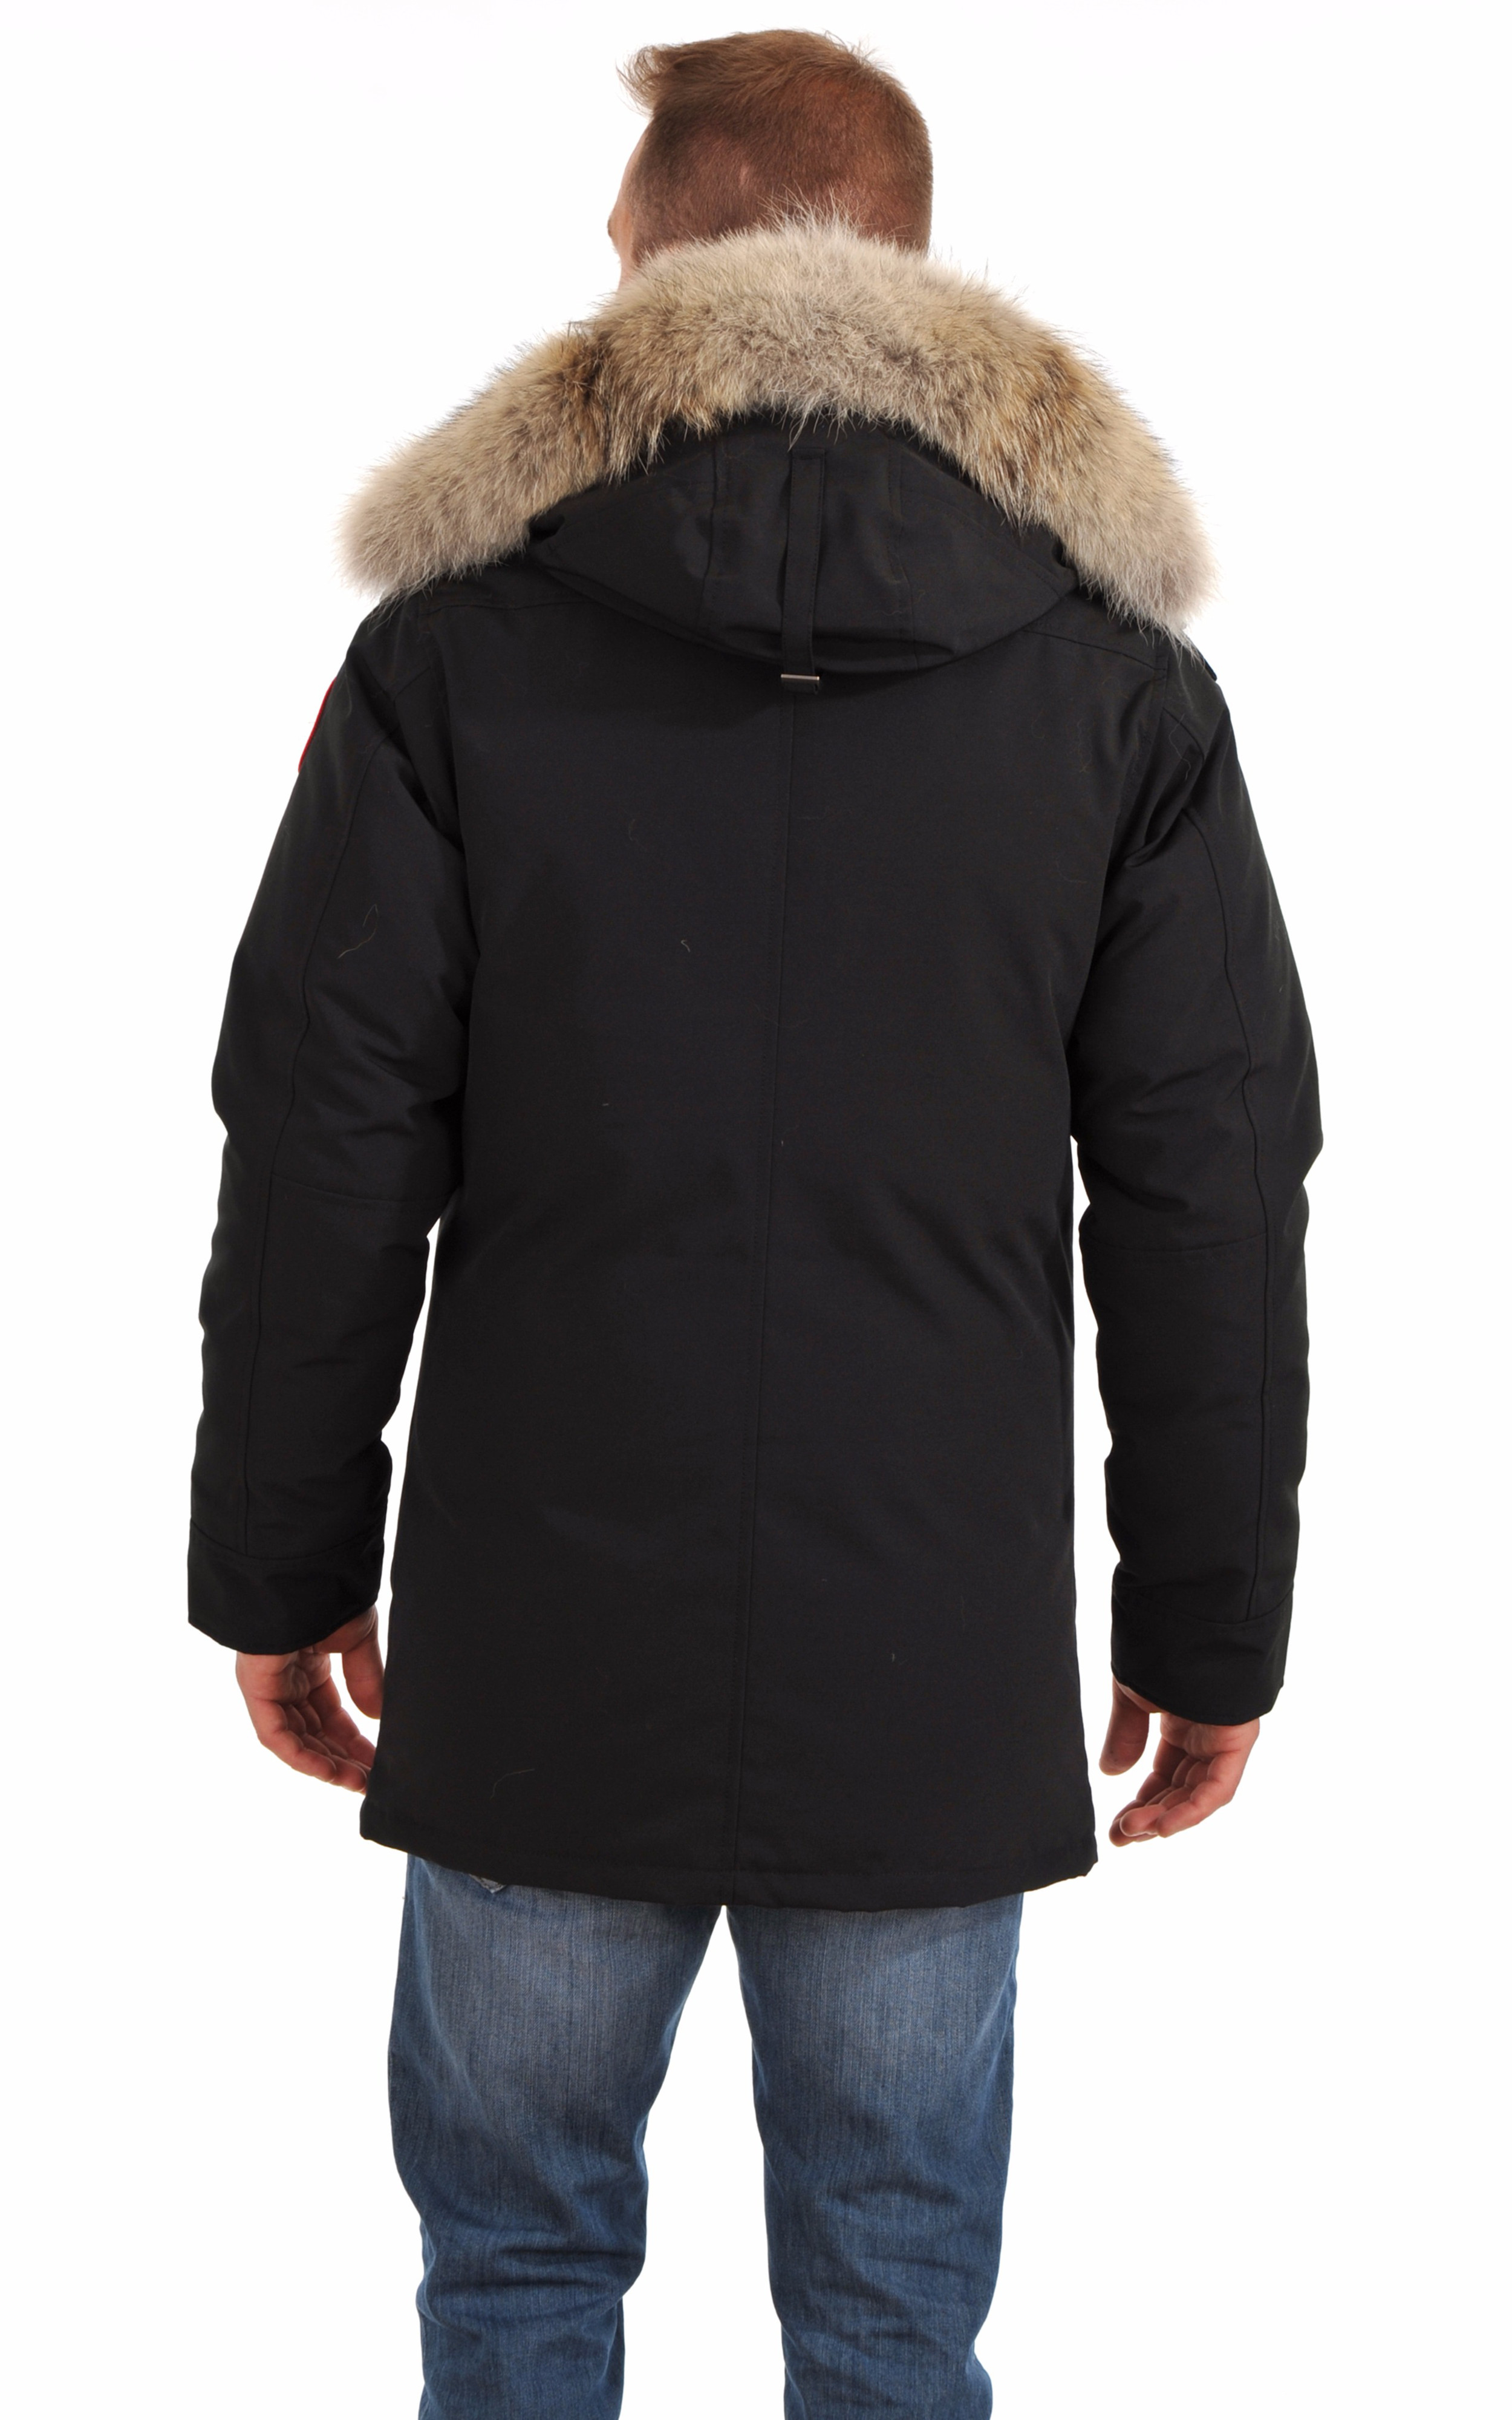 manteau canada goose homme montreal canada goose chilliwack parka replica store. Black Bedroom Furniture Sets. Home Design Ideas